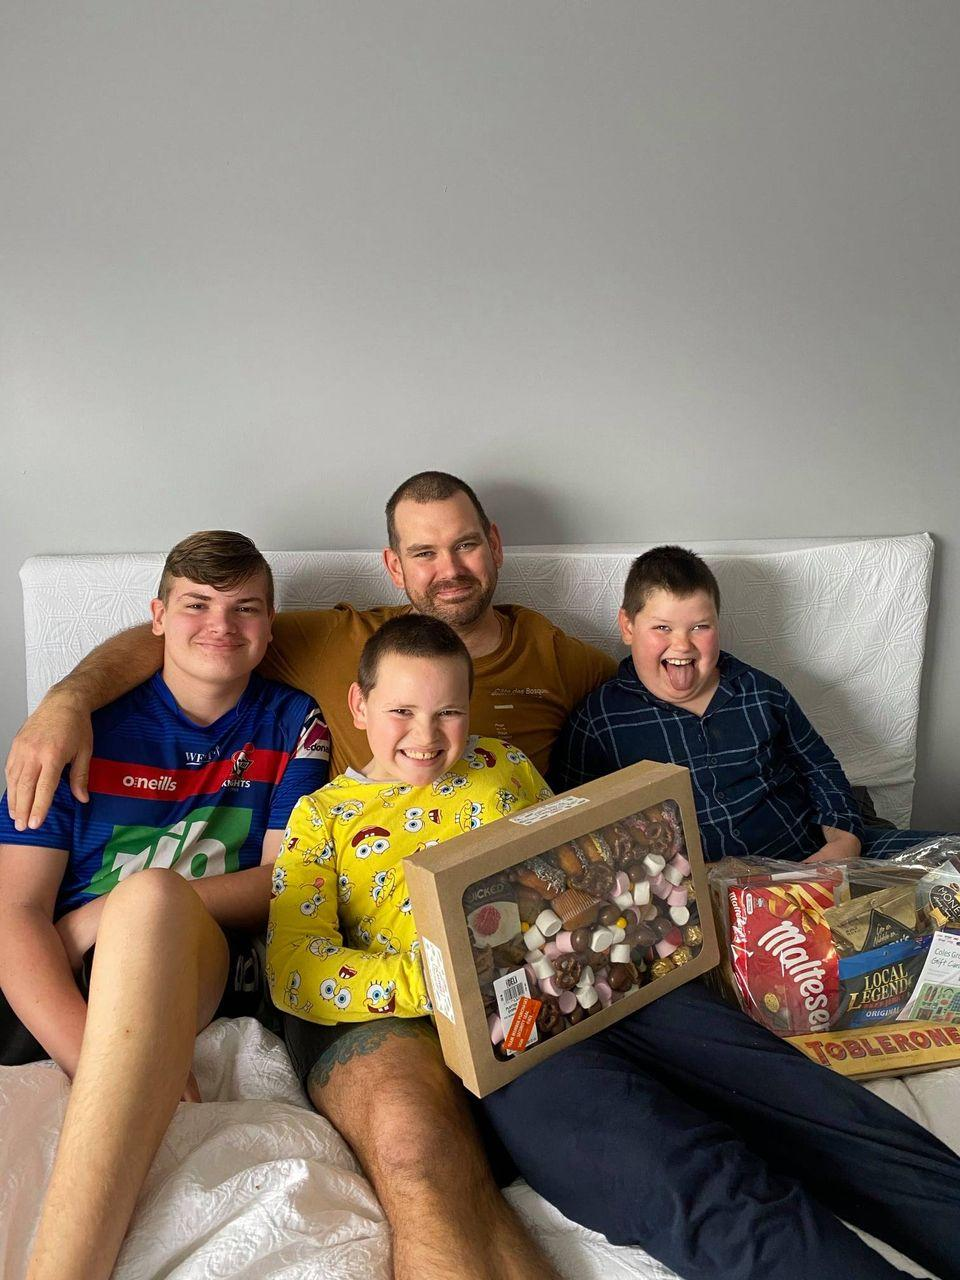 Father & 4 sons sitting on a bed with 2 gift packs. Source: Facebook